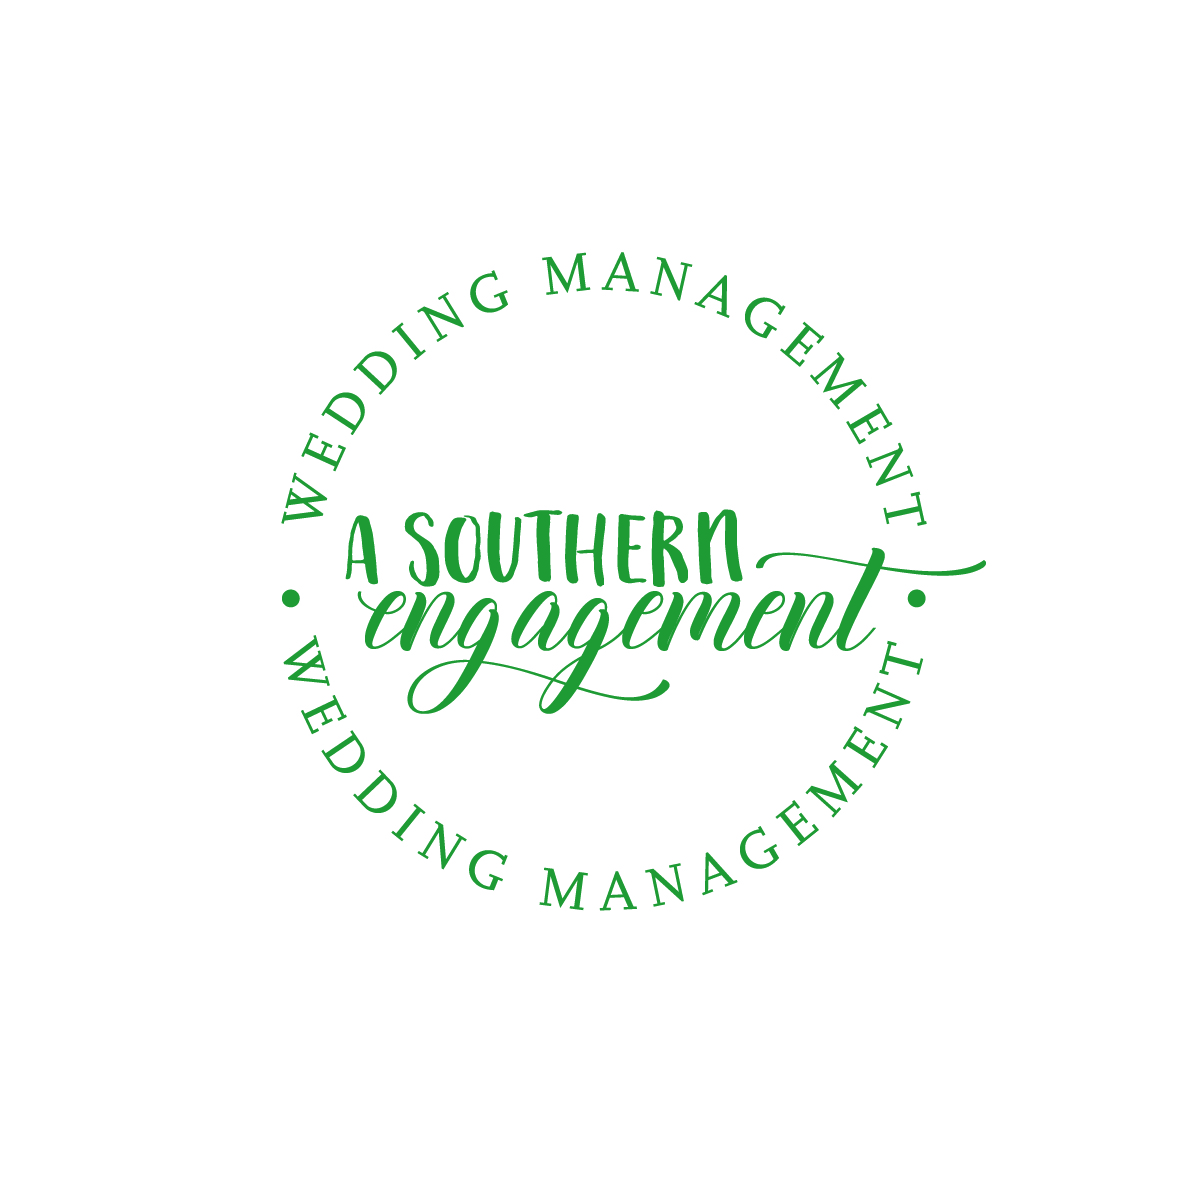 A Southern Engagement, Wedding Management team